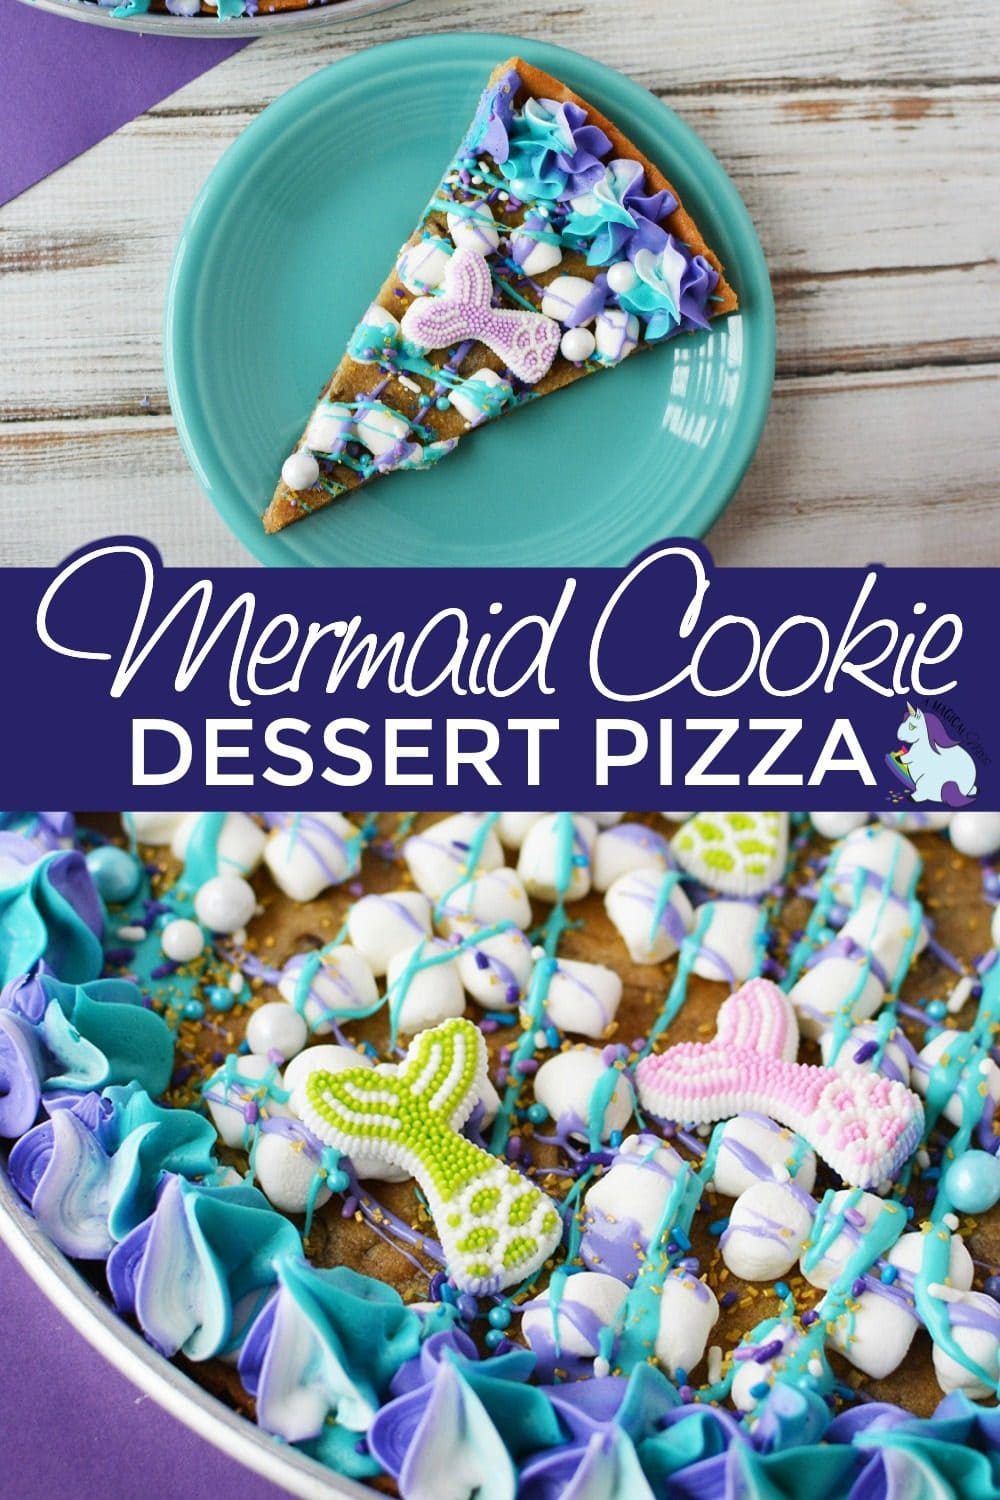 Cookie dessert pizza topped with mermaid decorations.